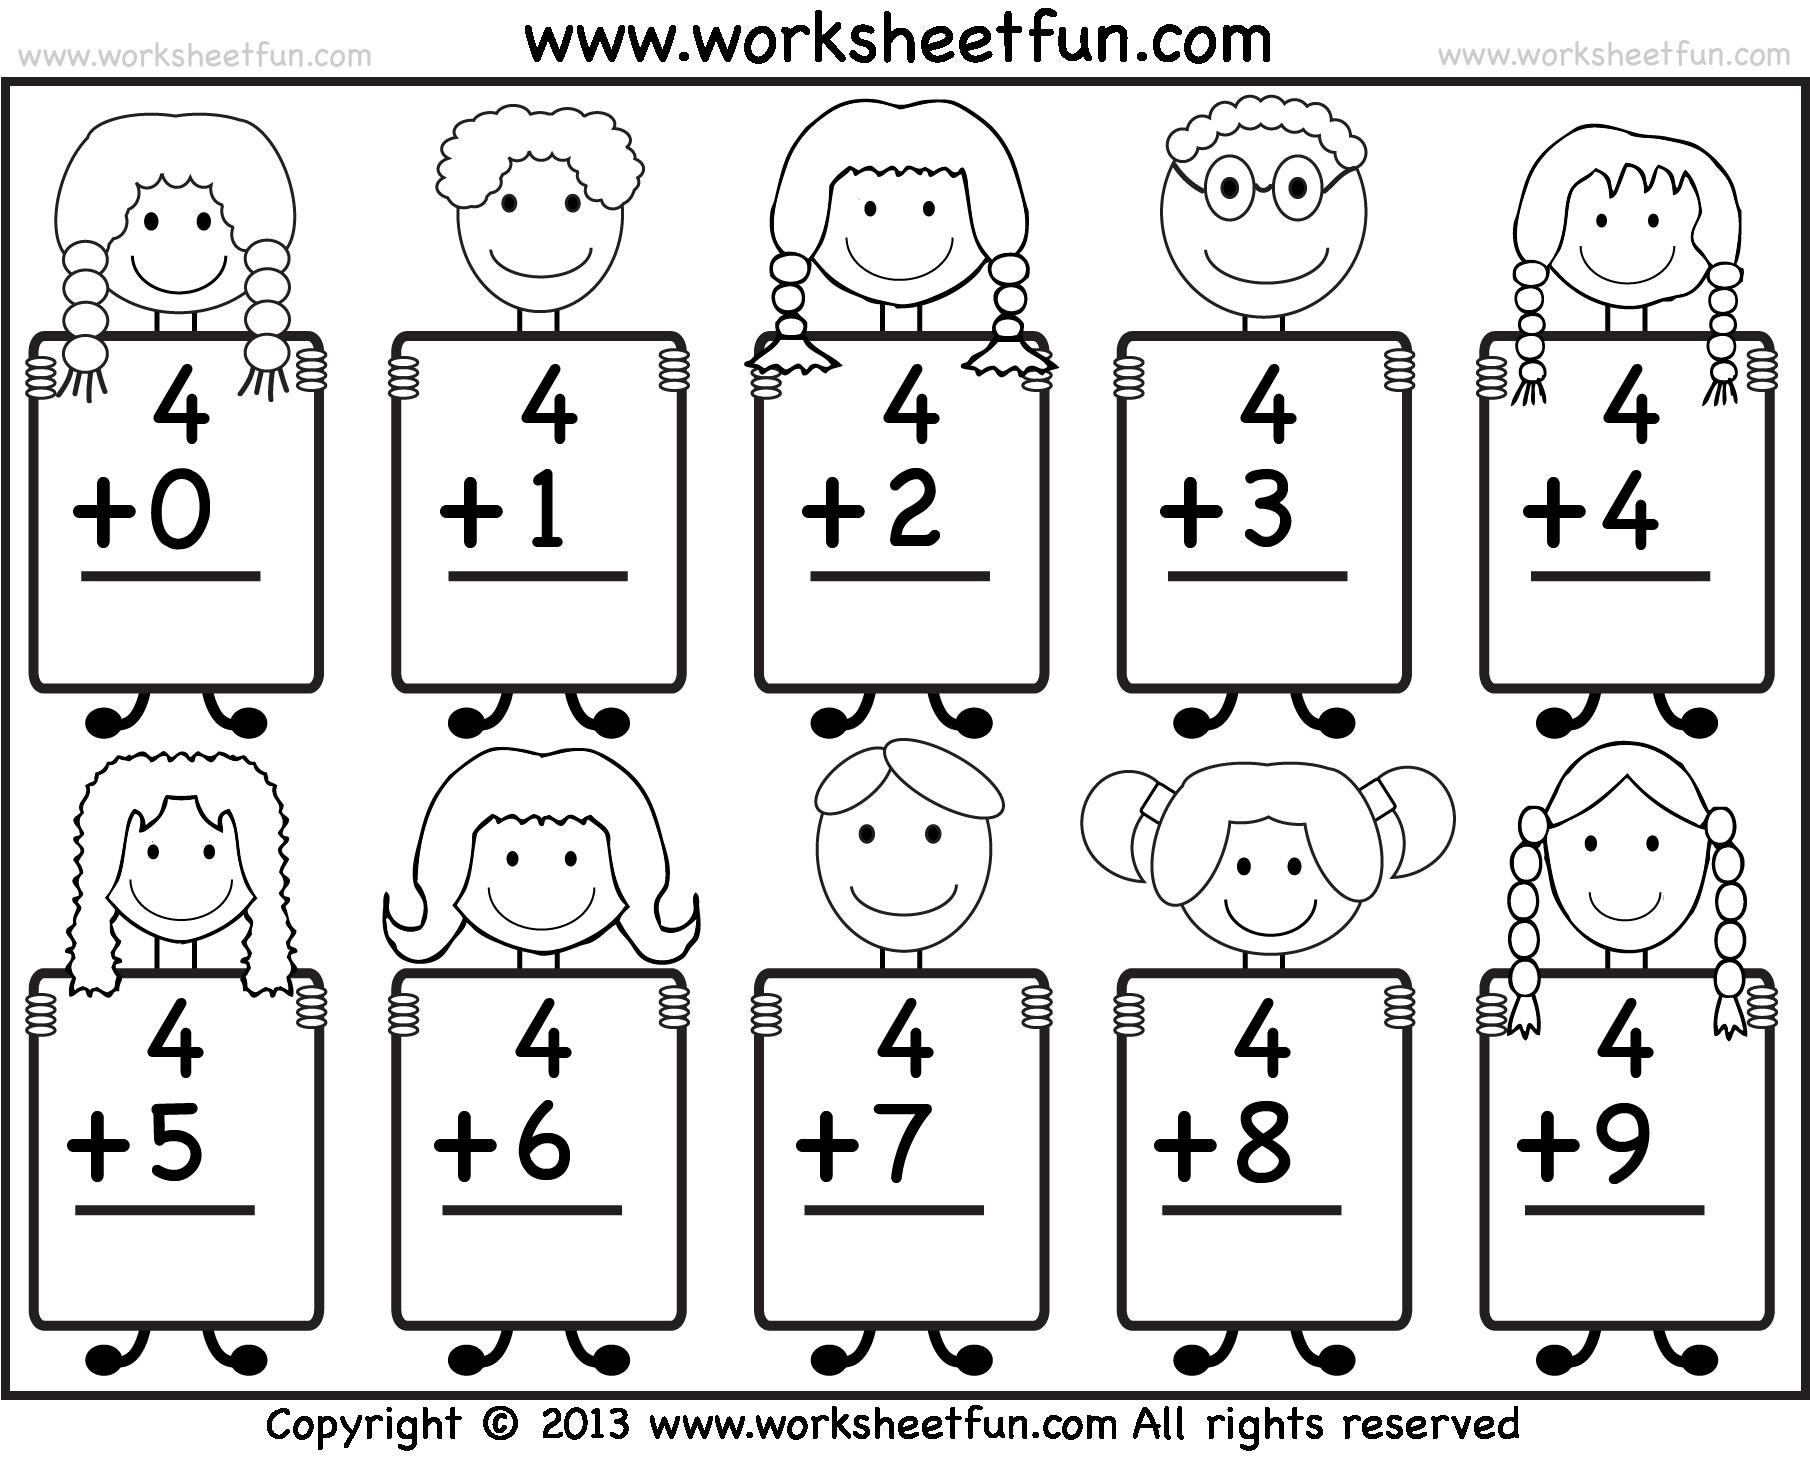 freeprintablemathworksheetsforkindergartenaddition1png – Maths for Kids Worksheets